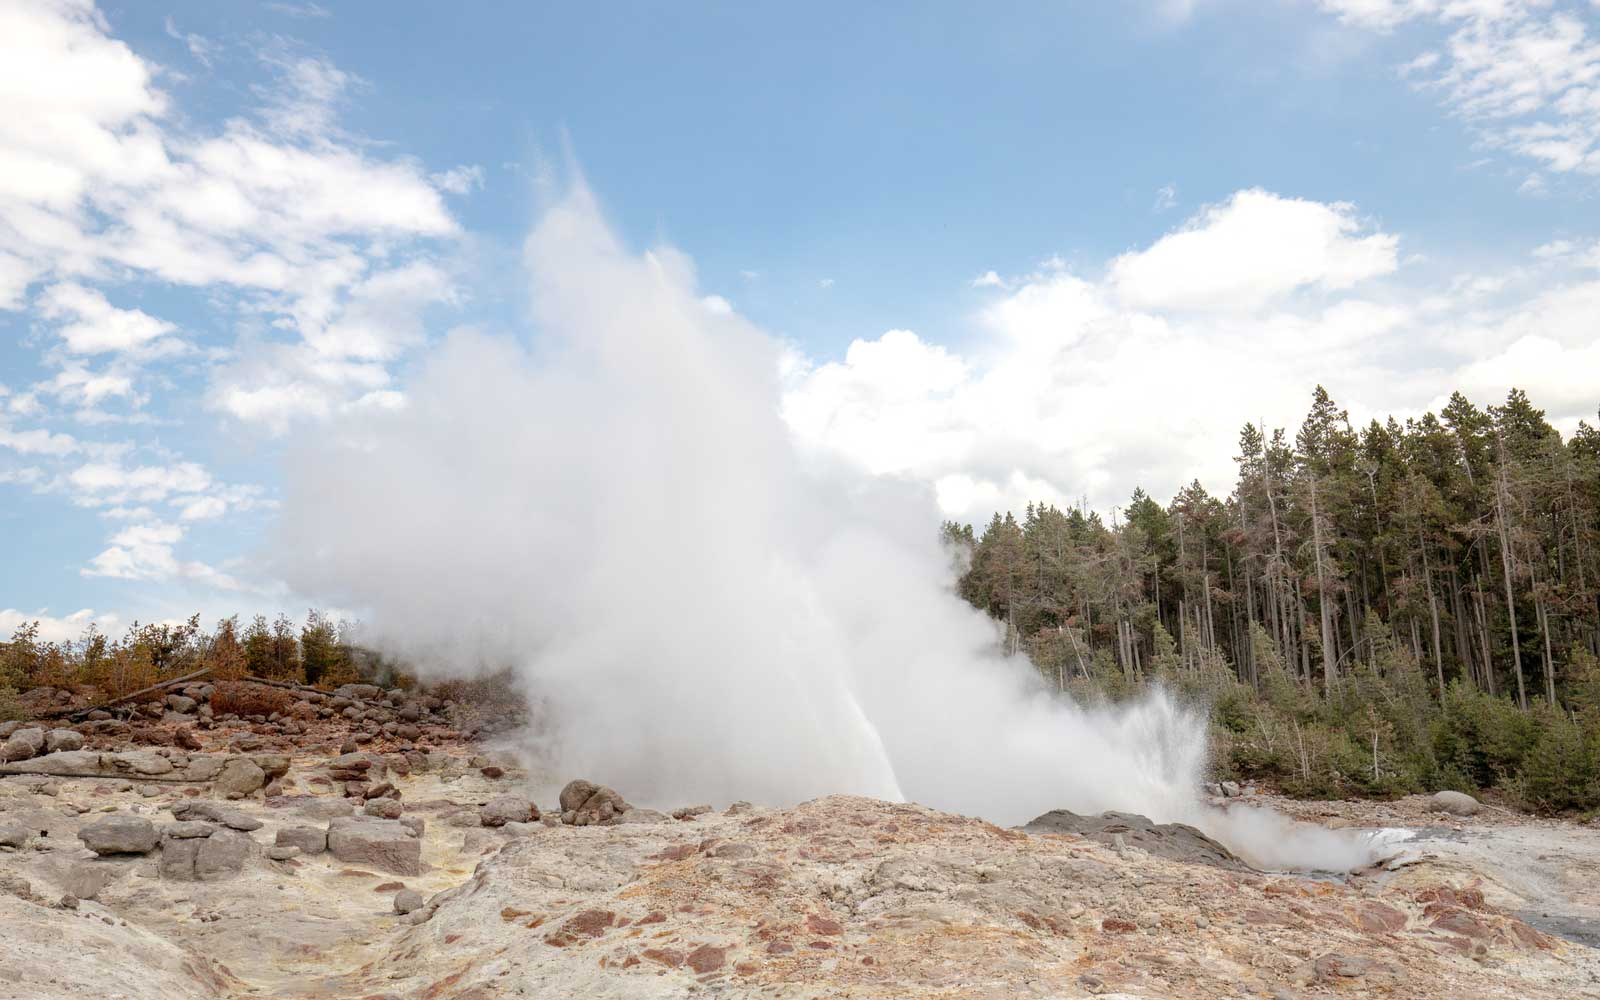 Yellowstone National Park's Steamboat Geyser Is Nearing a Record-breaking Number of Eruptions